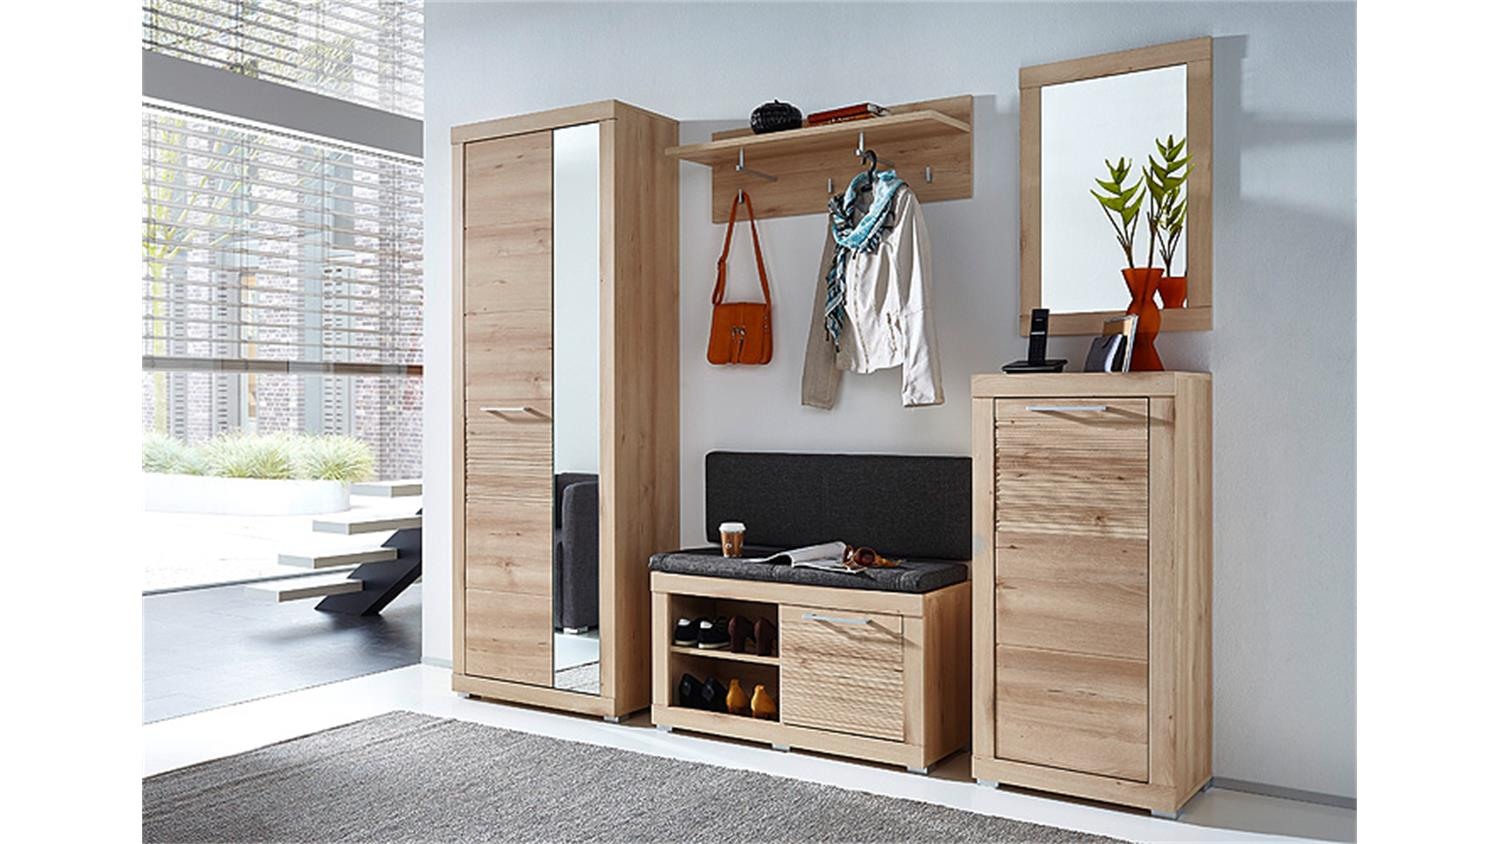 garderobenset 2 targa garderobe flurm bel in buche hell. Black Bedroom Furniture Sets. Home Design Ideas